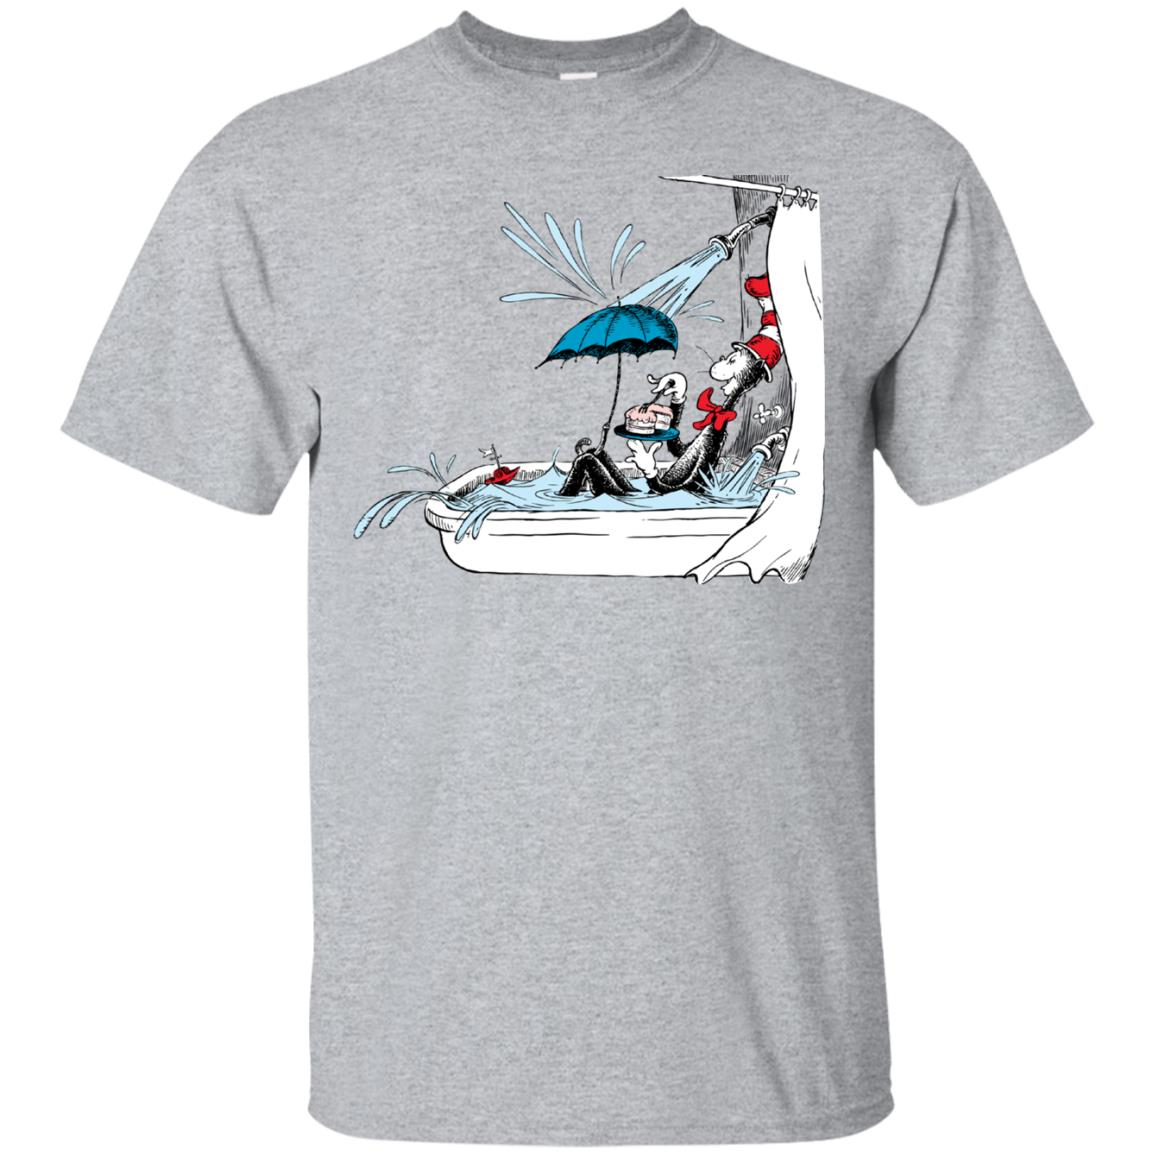 Dr. Seuss Cake in the Tub T-shirt 99promocode